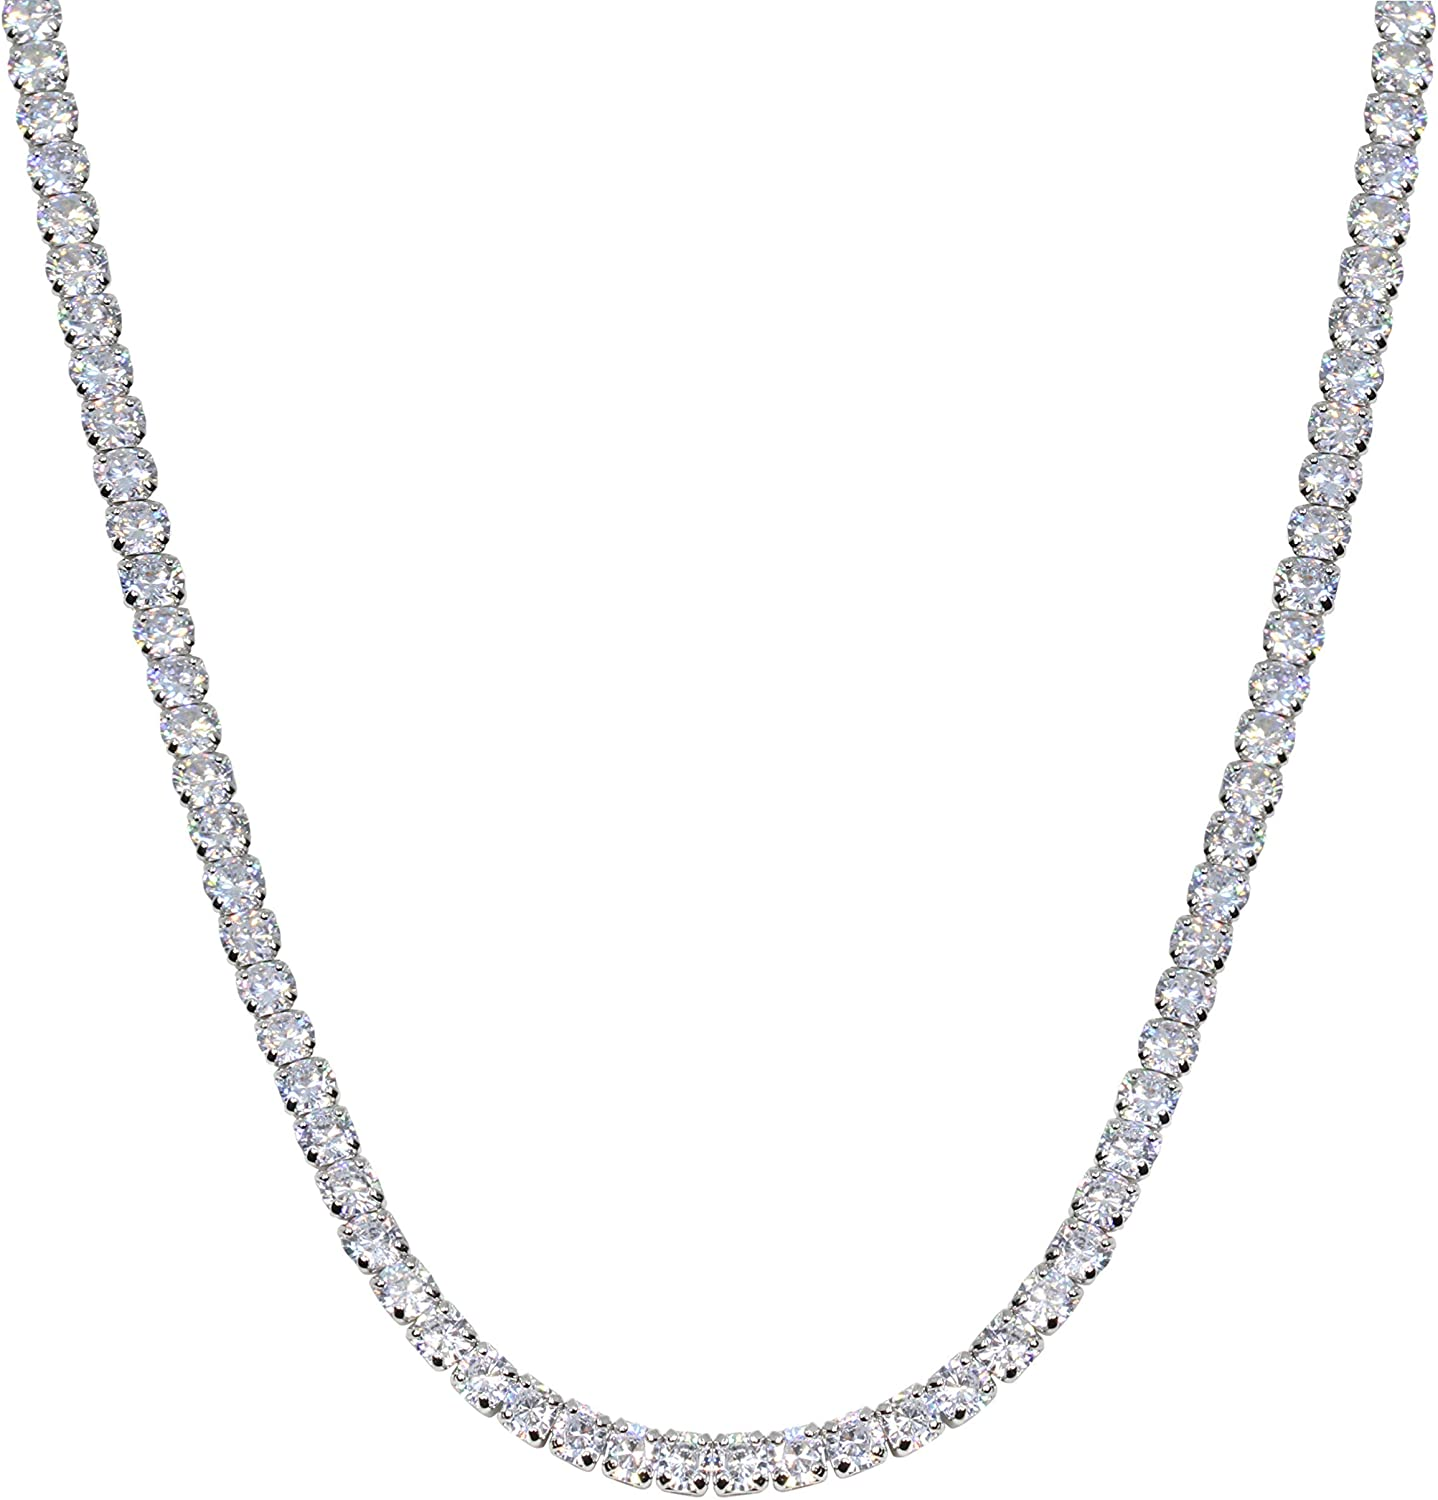 Savlano 18K Gold Plated Cubic Zirconia Round 4MM Classic Tennis 18 Inches Chain Necklace For Women, Girls & Men Comes With Savlano Gift Box